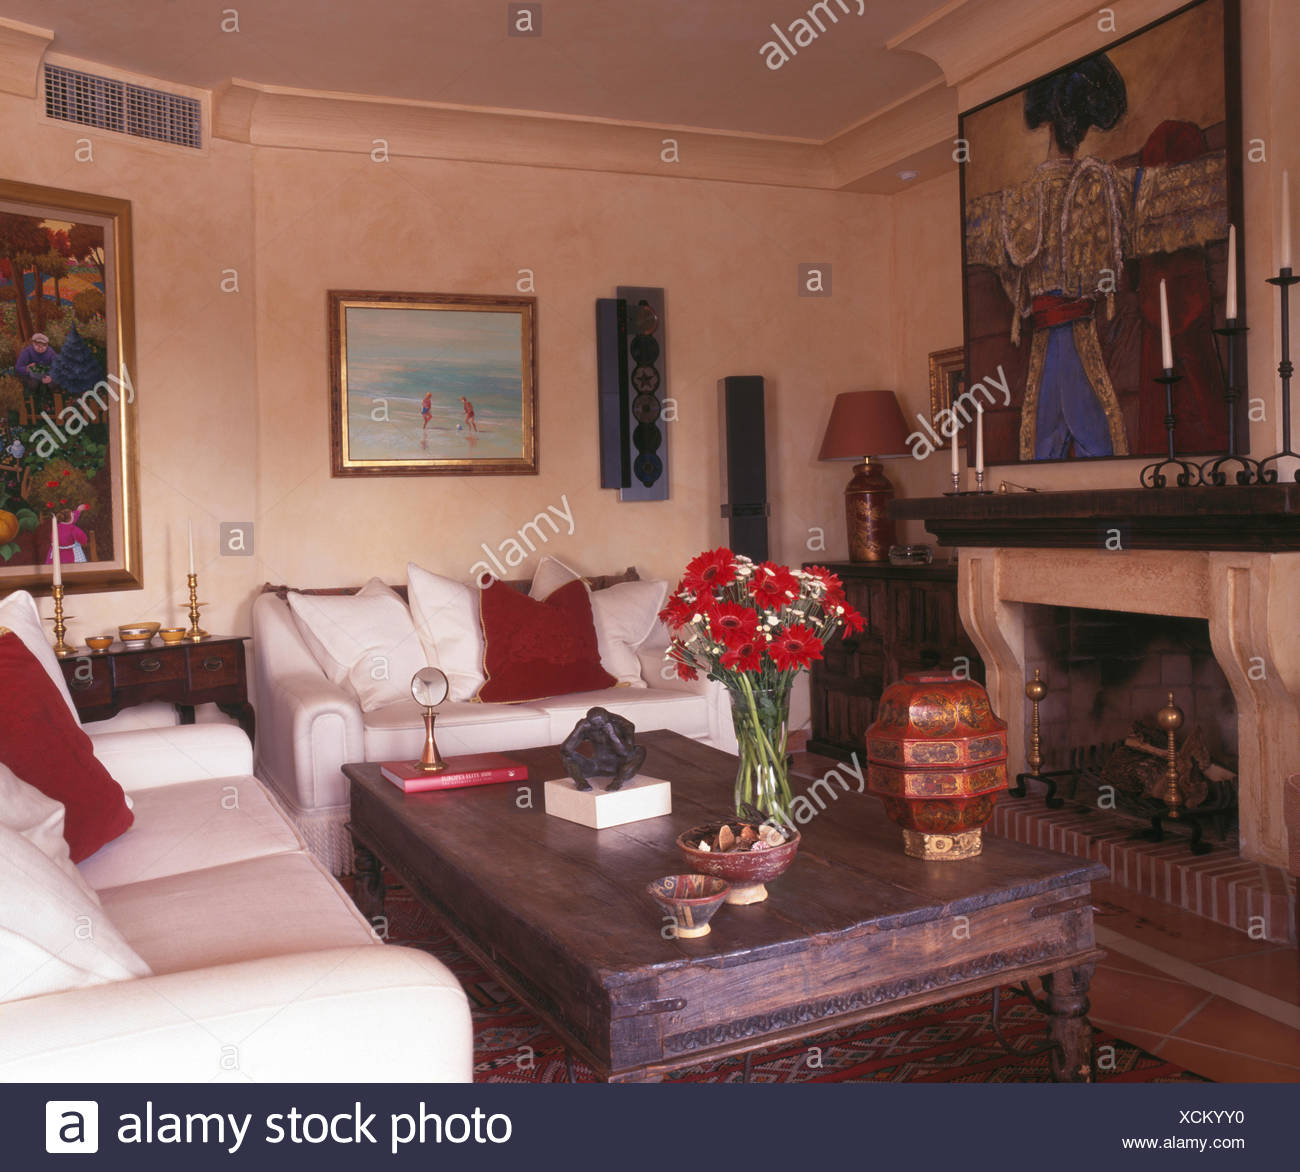 Wooden Indonesian Style Coffee Table And White Sofas In Spanish Country  Living Room With Picture Above Fireplace